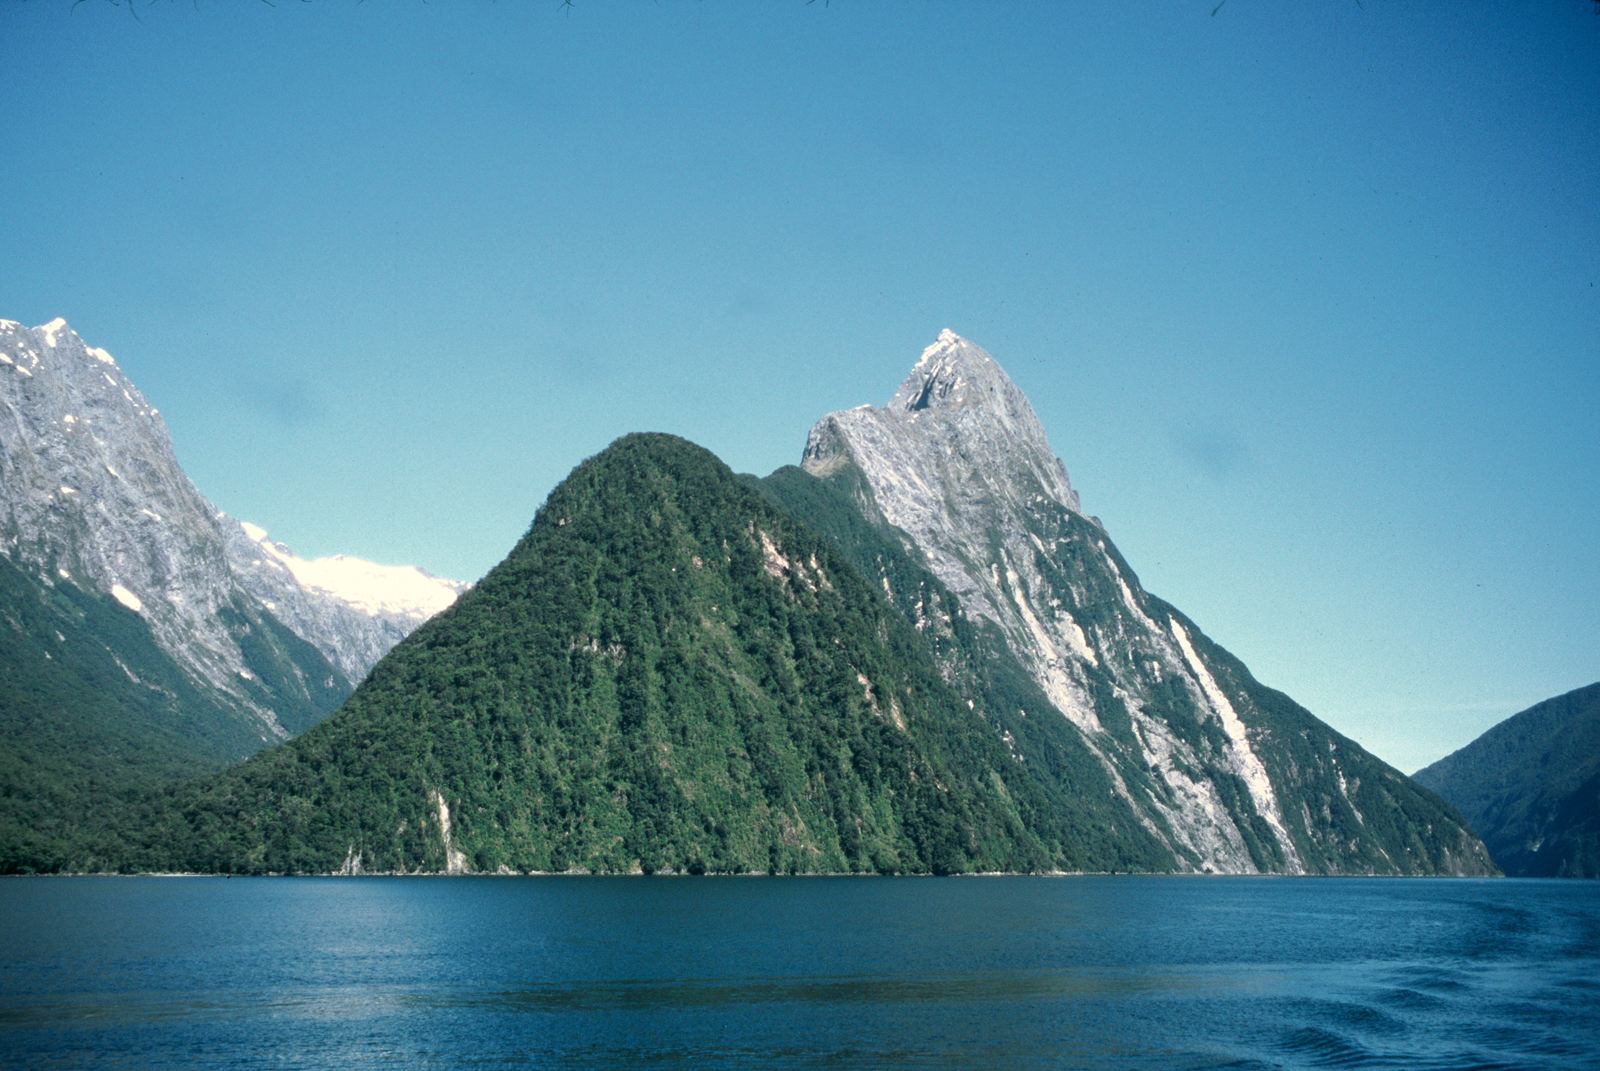 Mitre Peak rises out of Milford Sound near the end of the Milford Track.